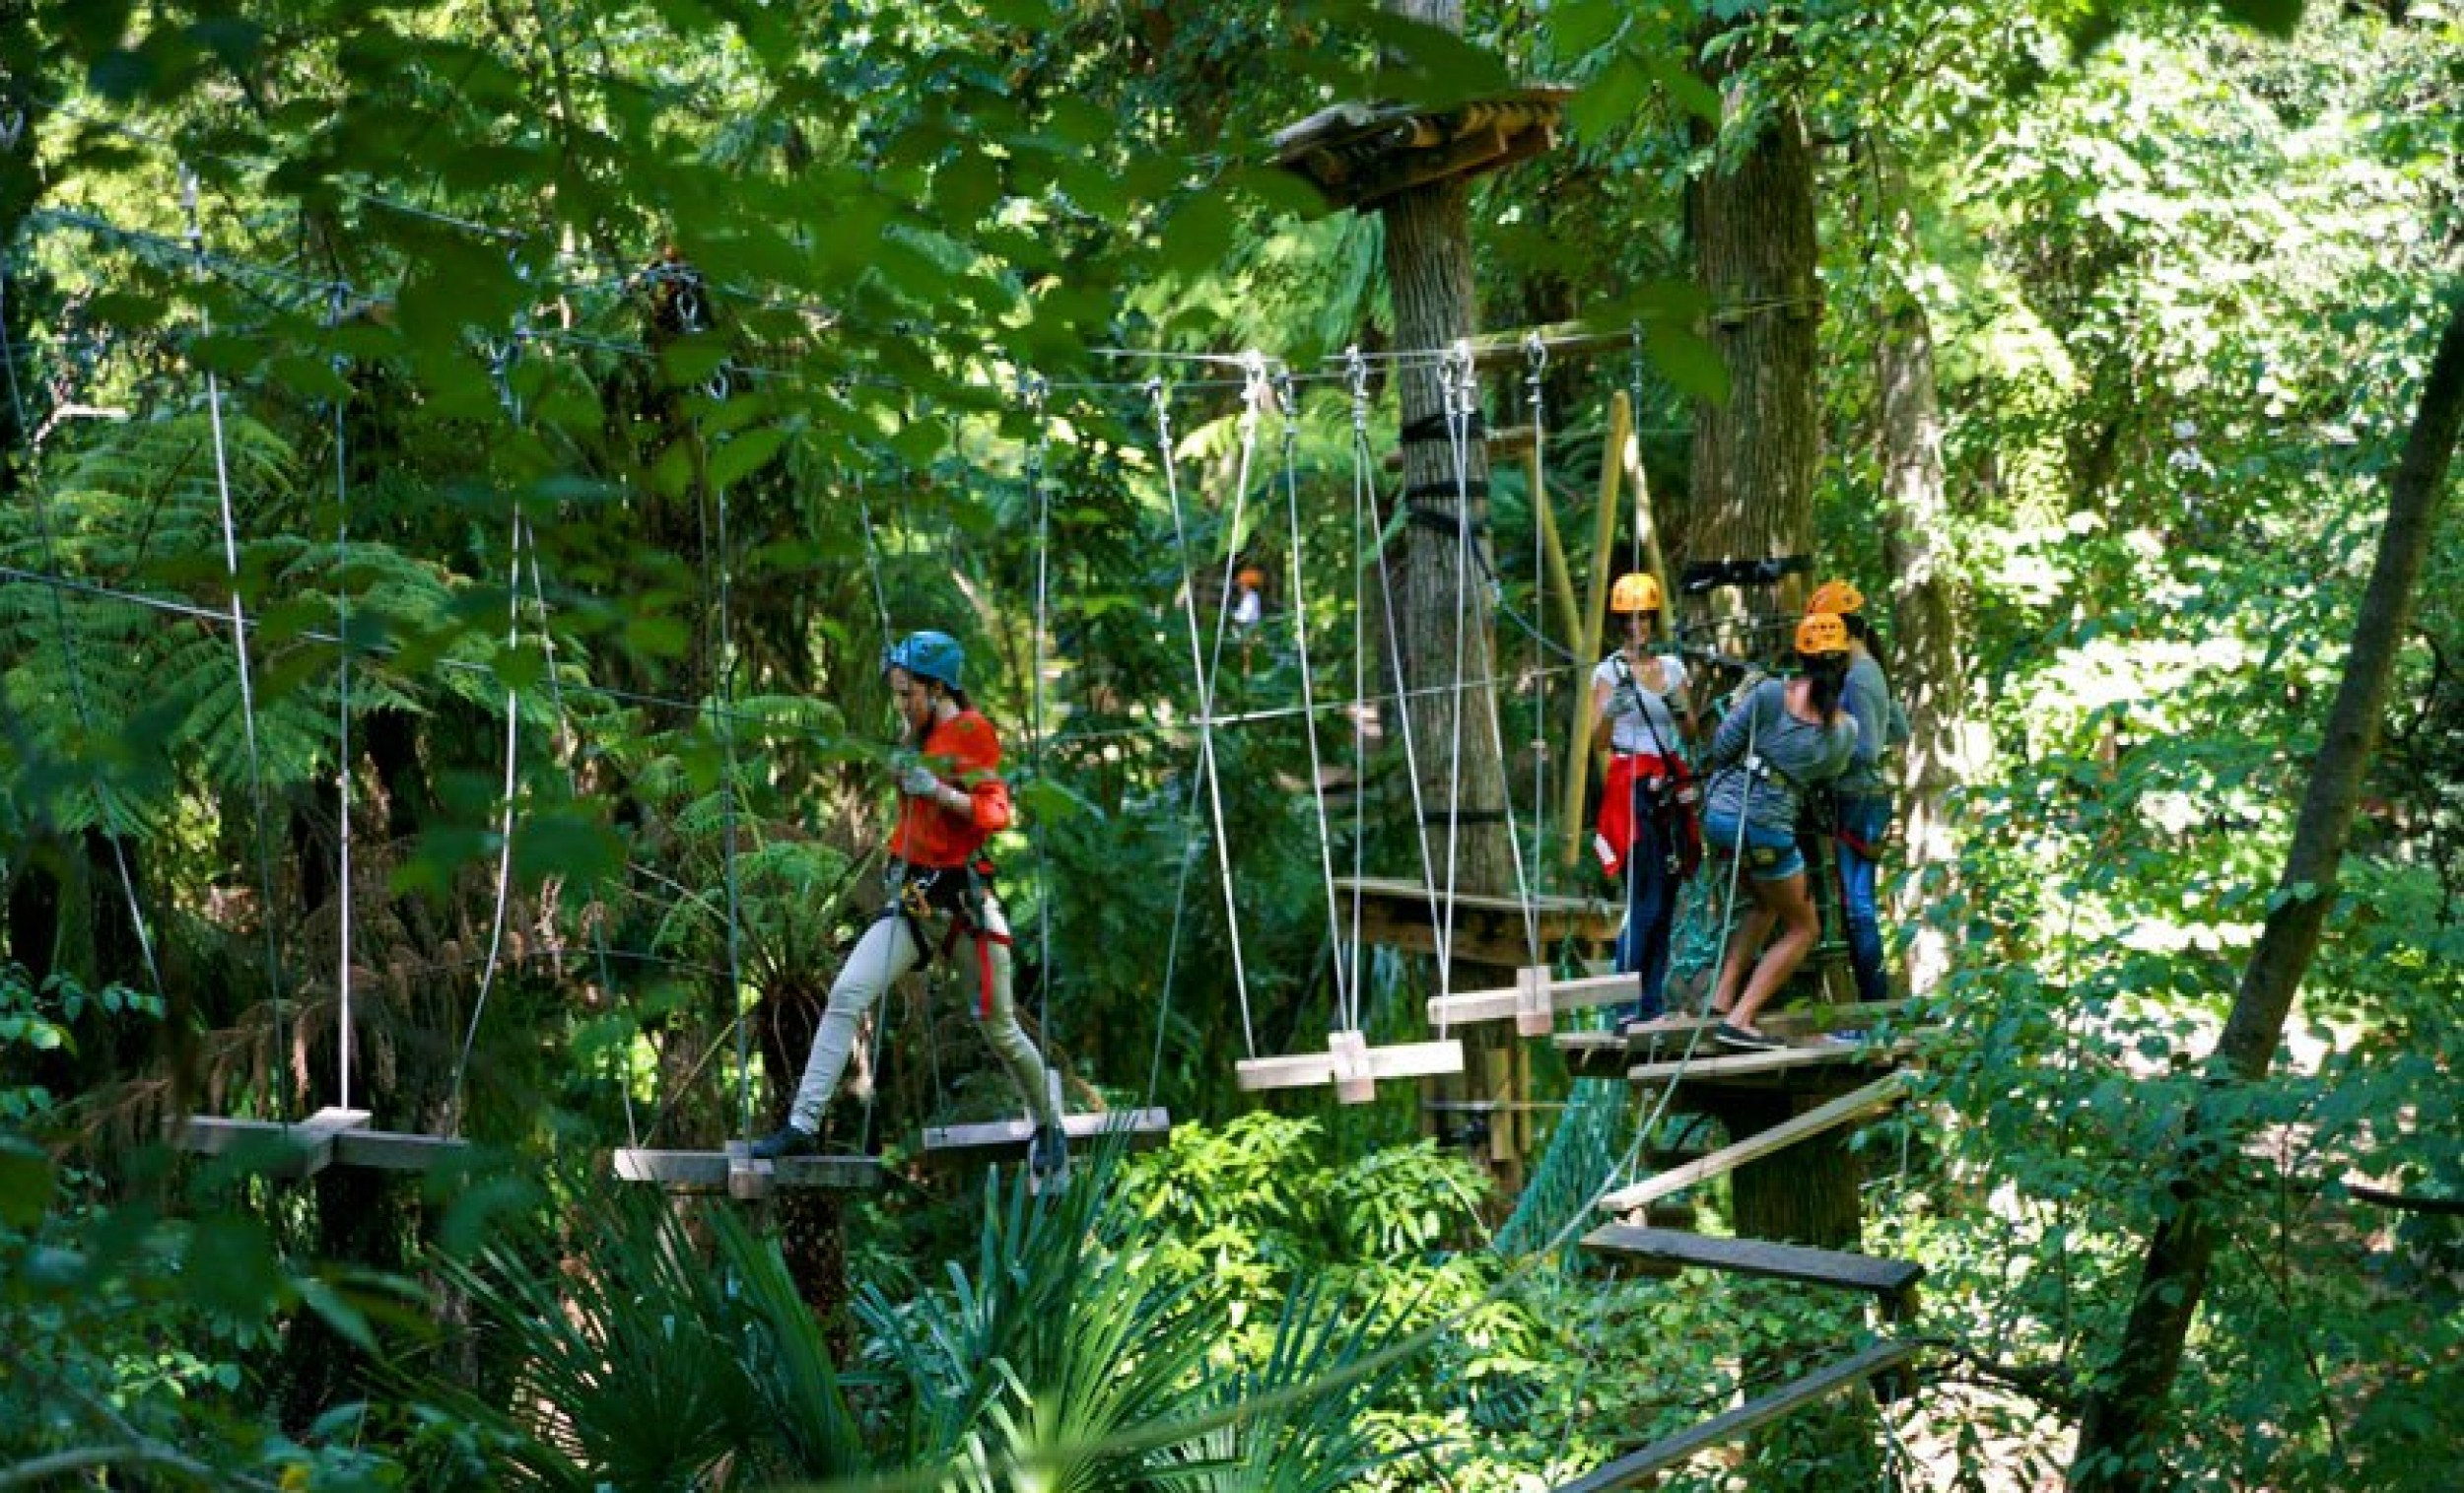 High Rope Courses